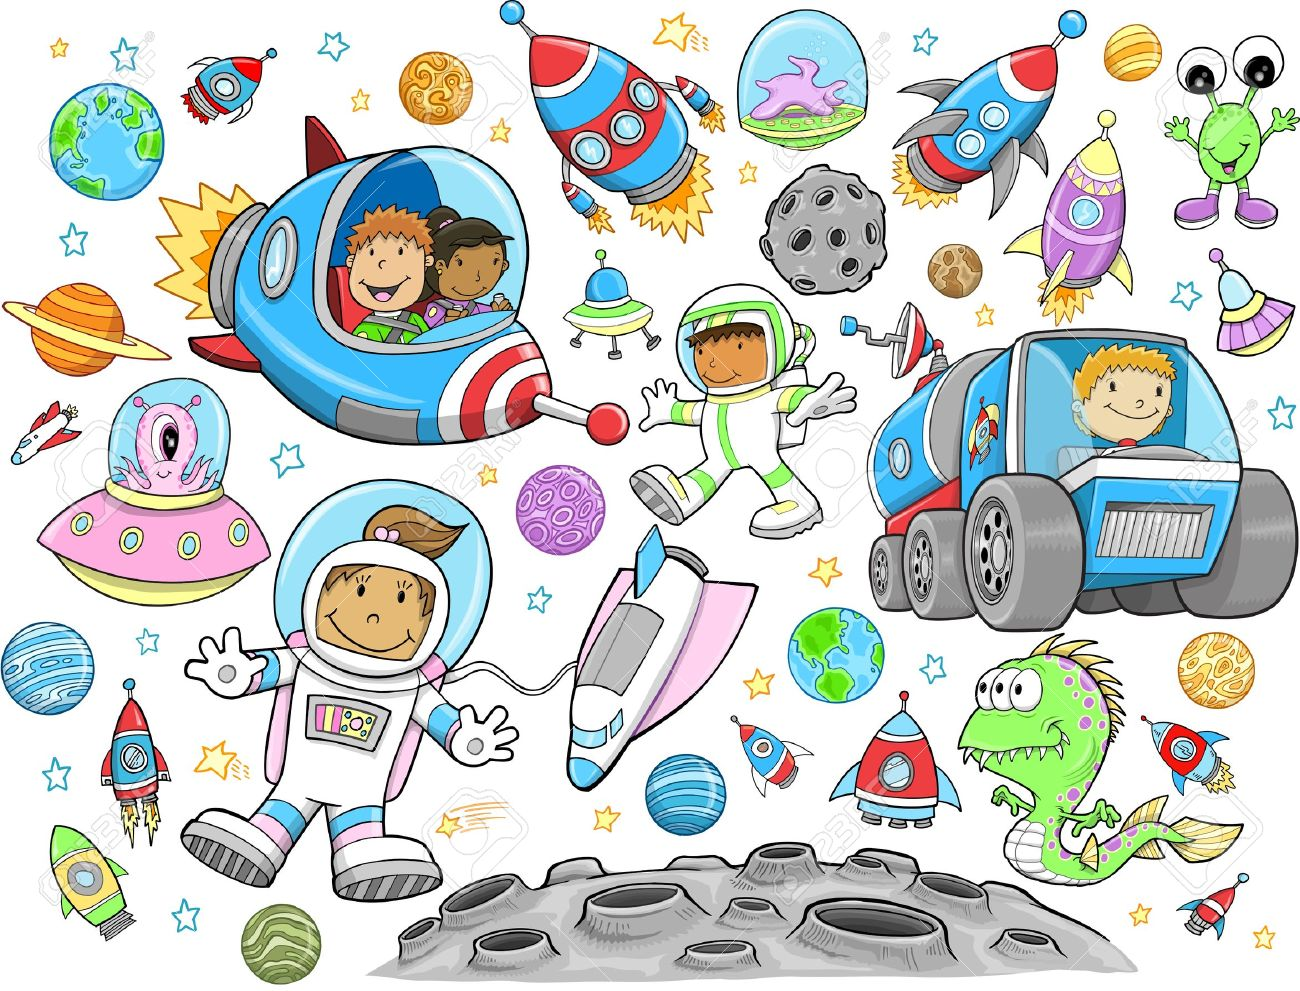 Cute Outer Space Vector Illustration Design Set - 19798206